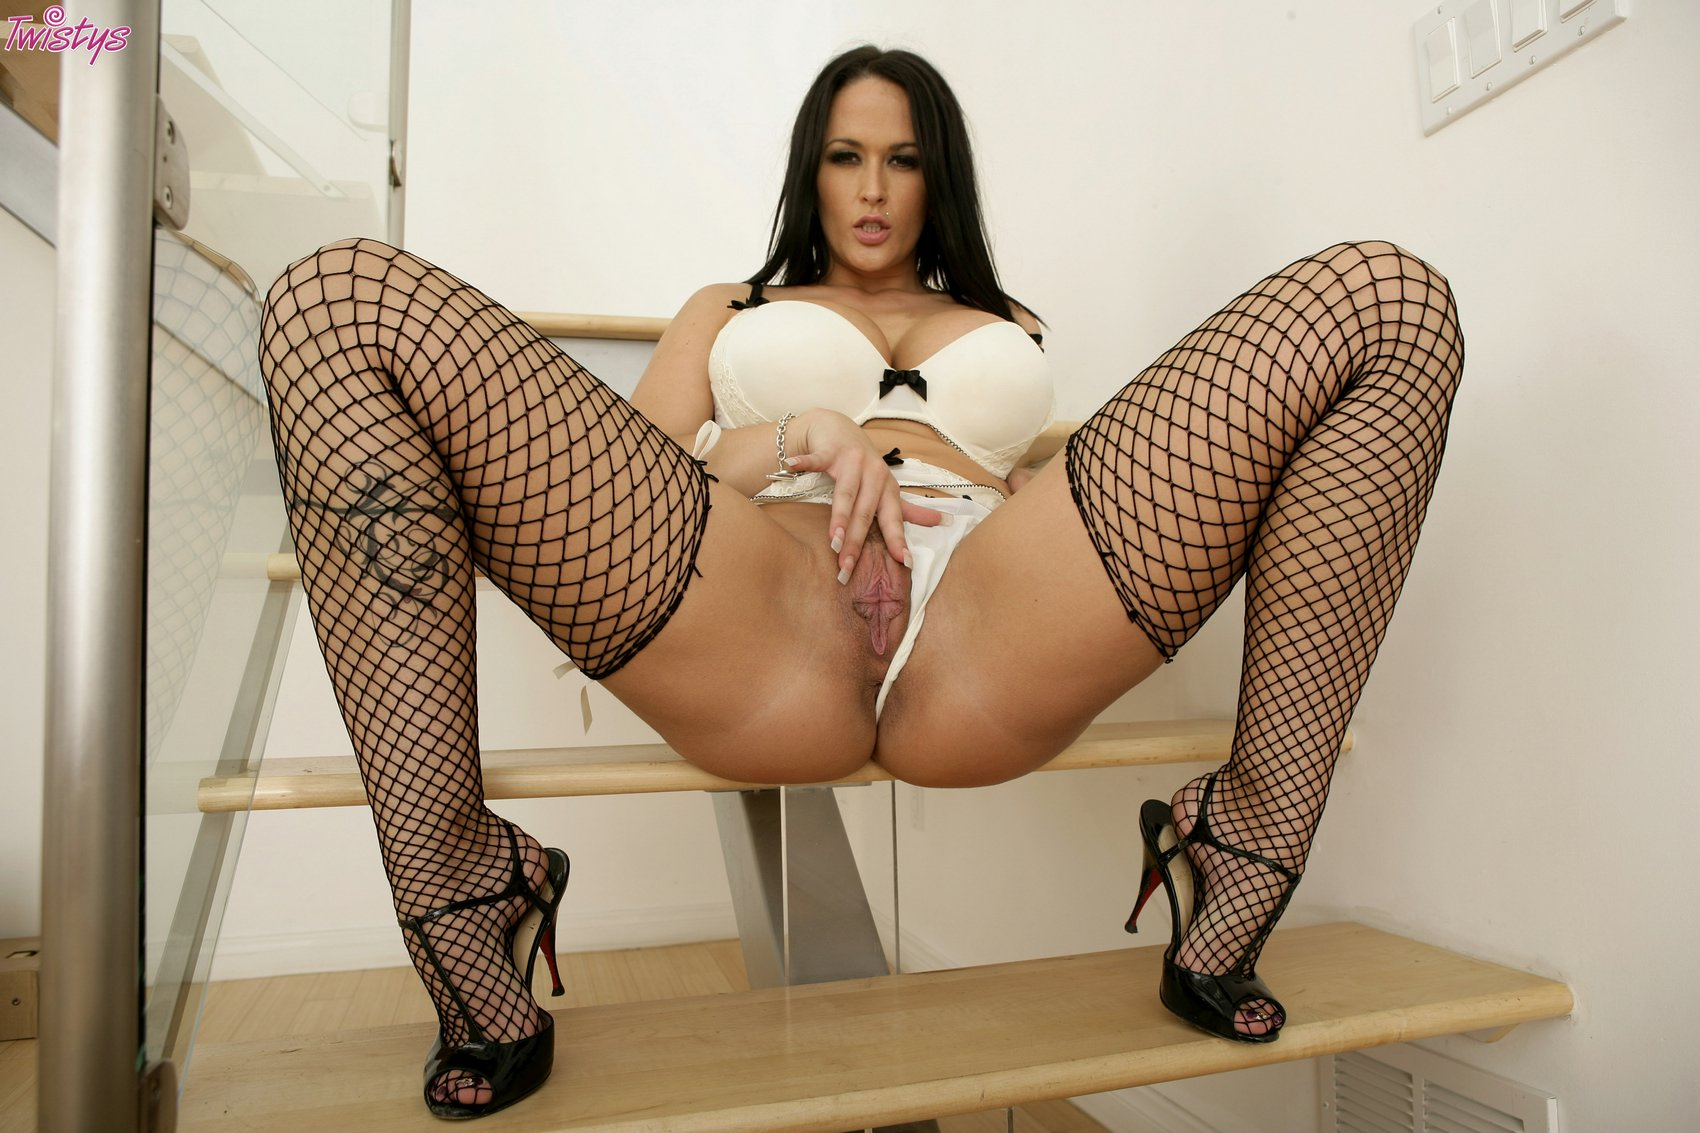 Carmella Bing In Fishnet Stockings And Sexy Shoes Posing -1751